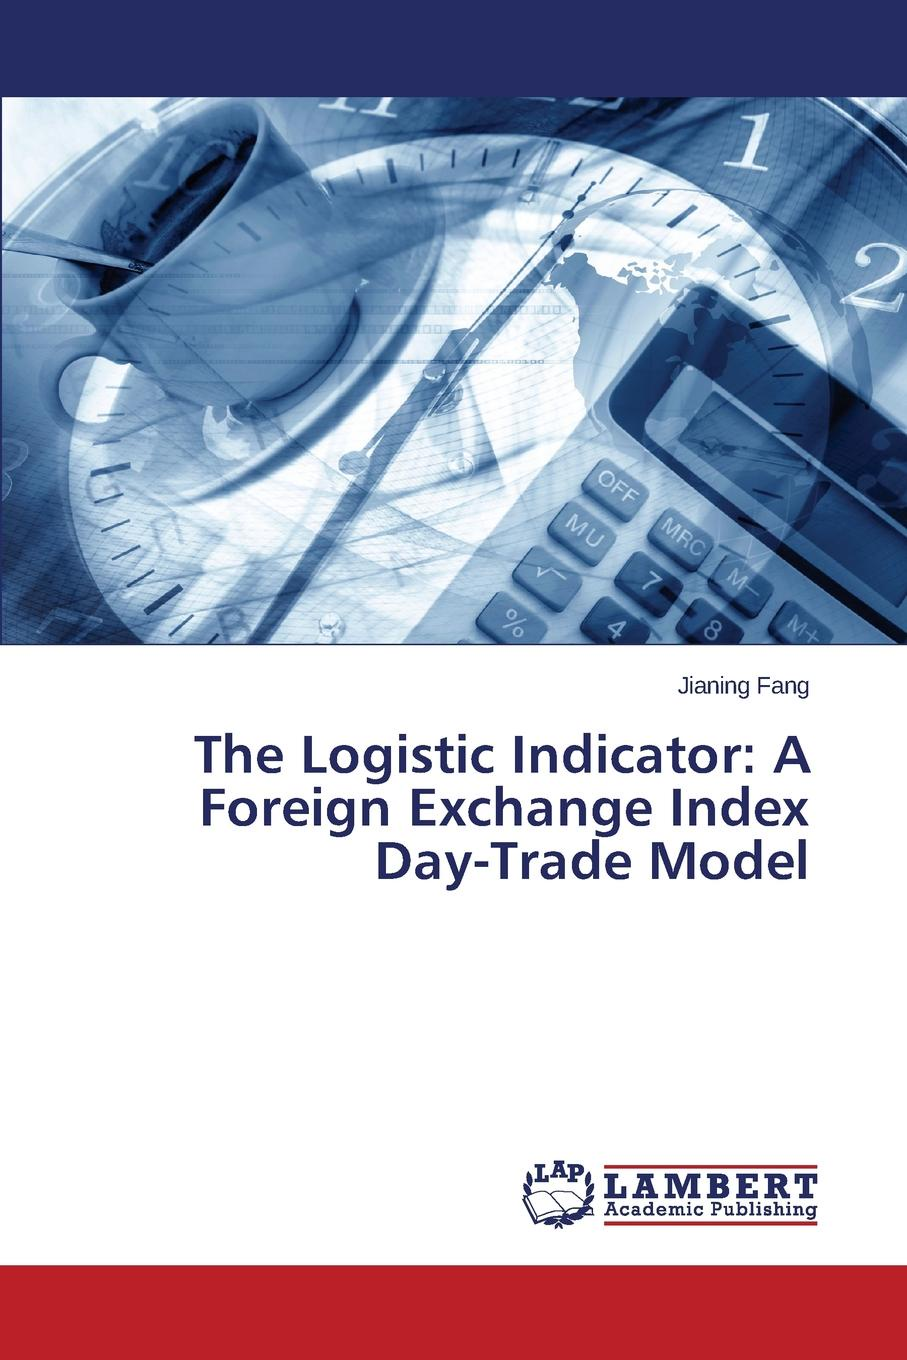 Fang Jianing The Logistic Indicator. A Foreign Exchange Index Day-Trade Model фен philips bhd174 00 2100вт черный голубой